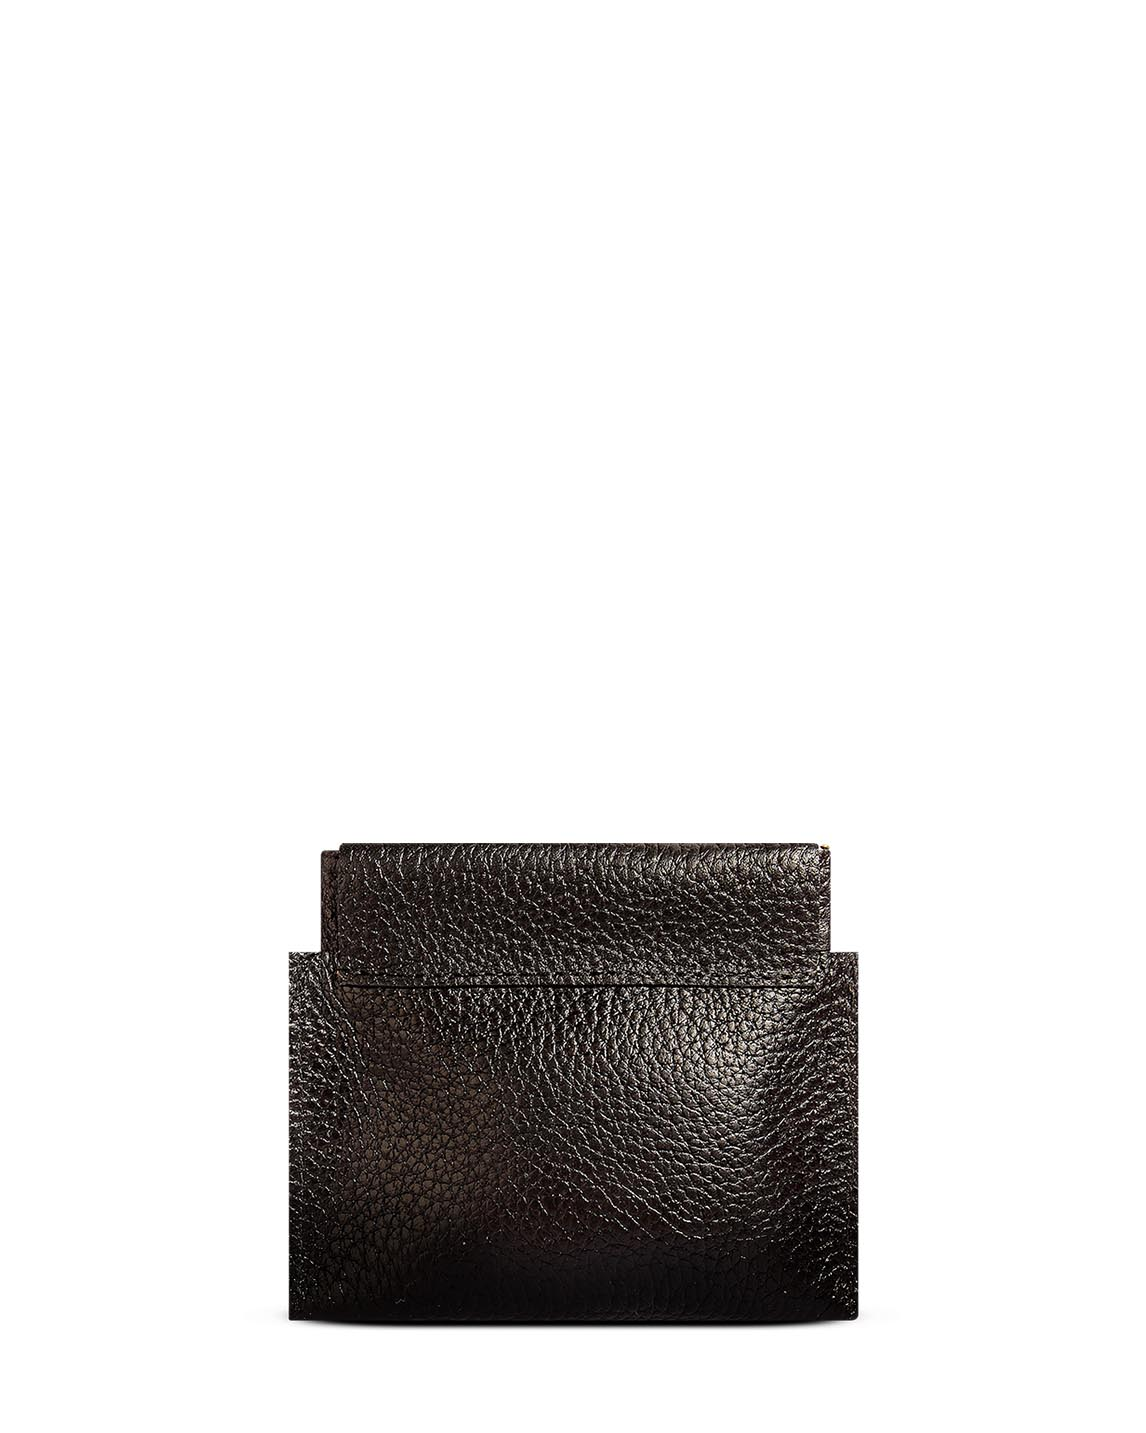 Monedero M-10 Color Negro